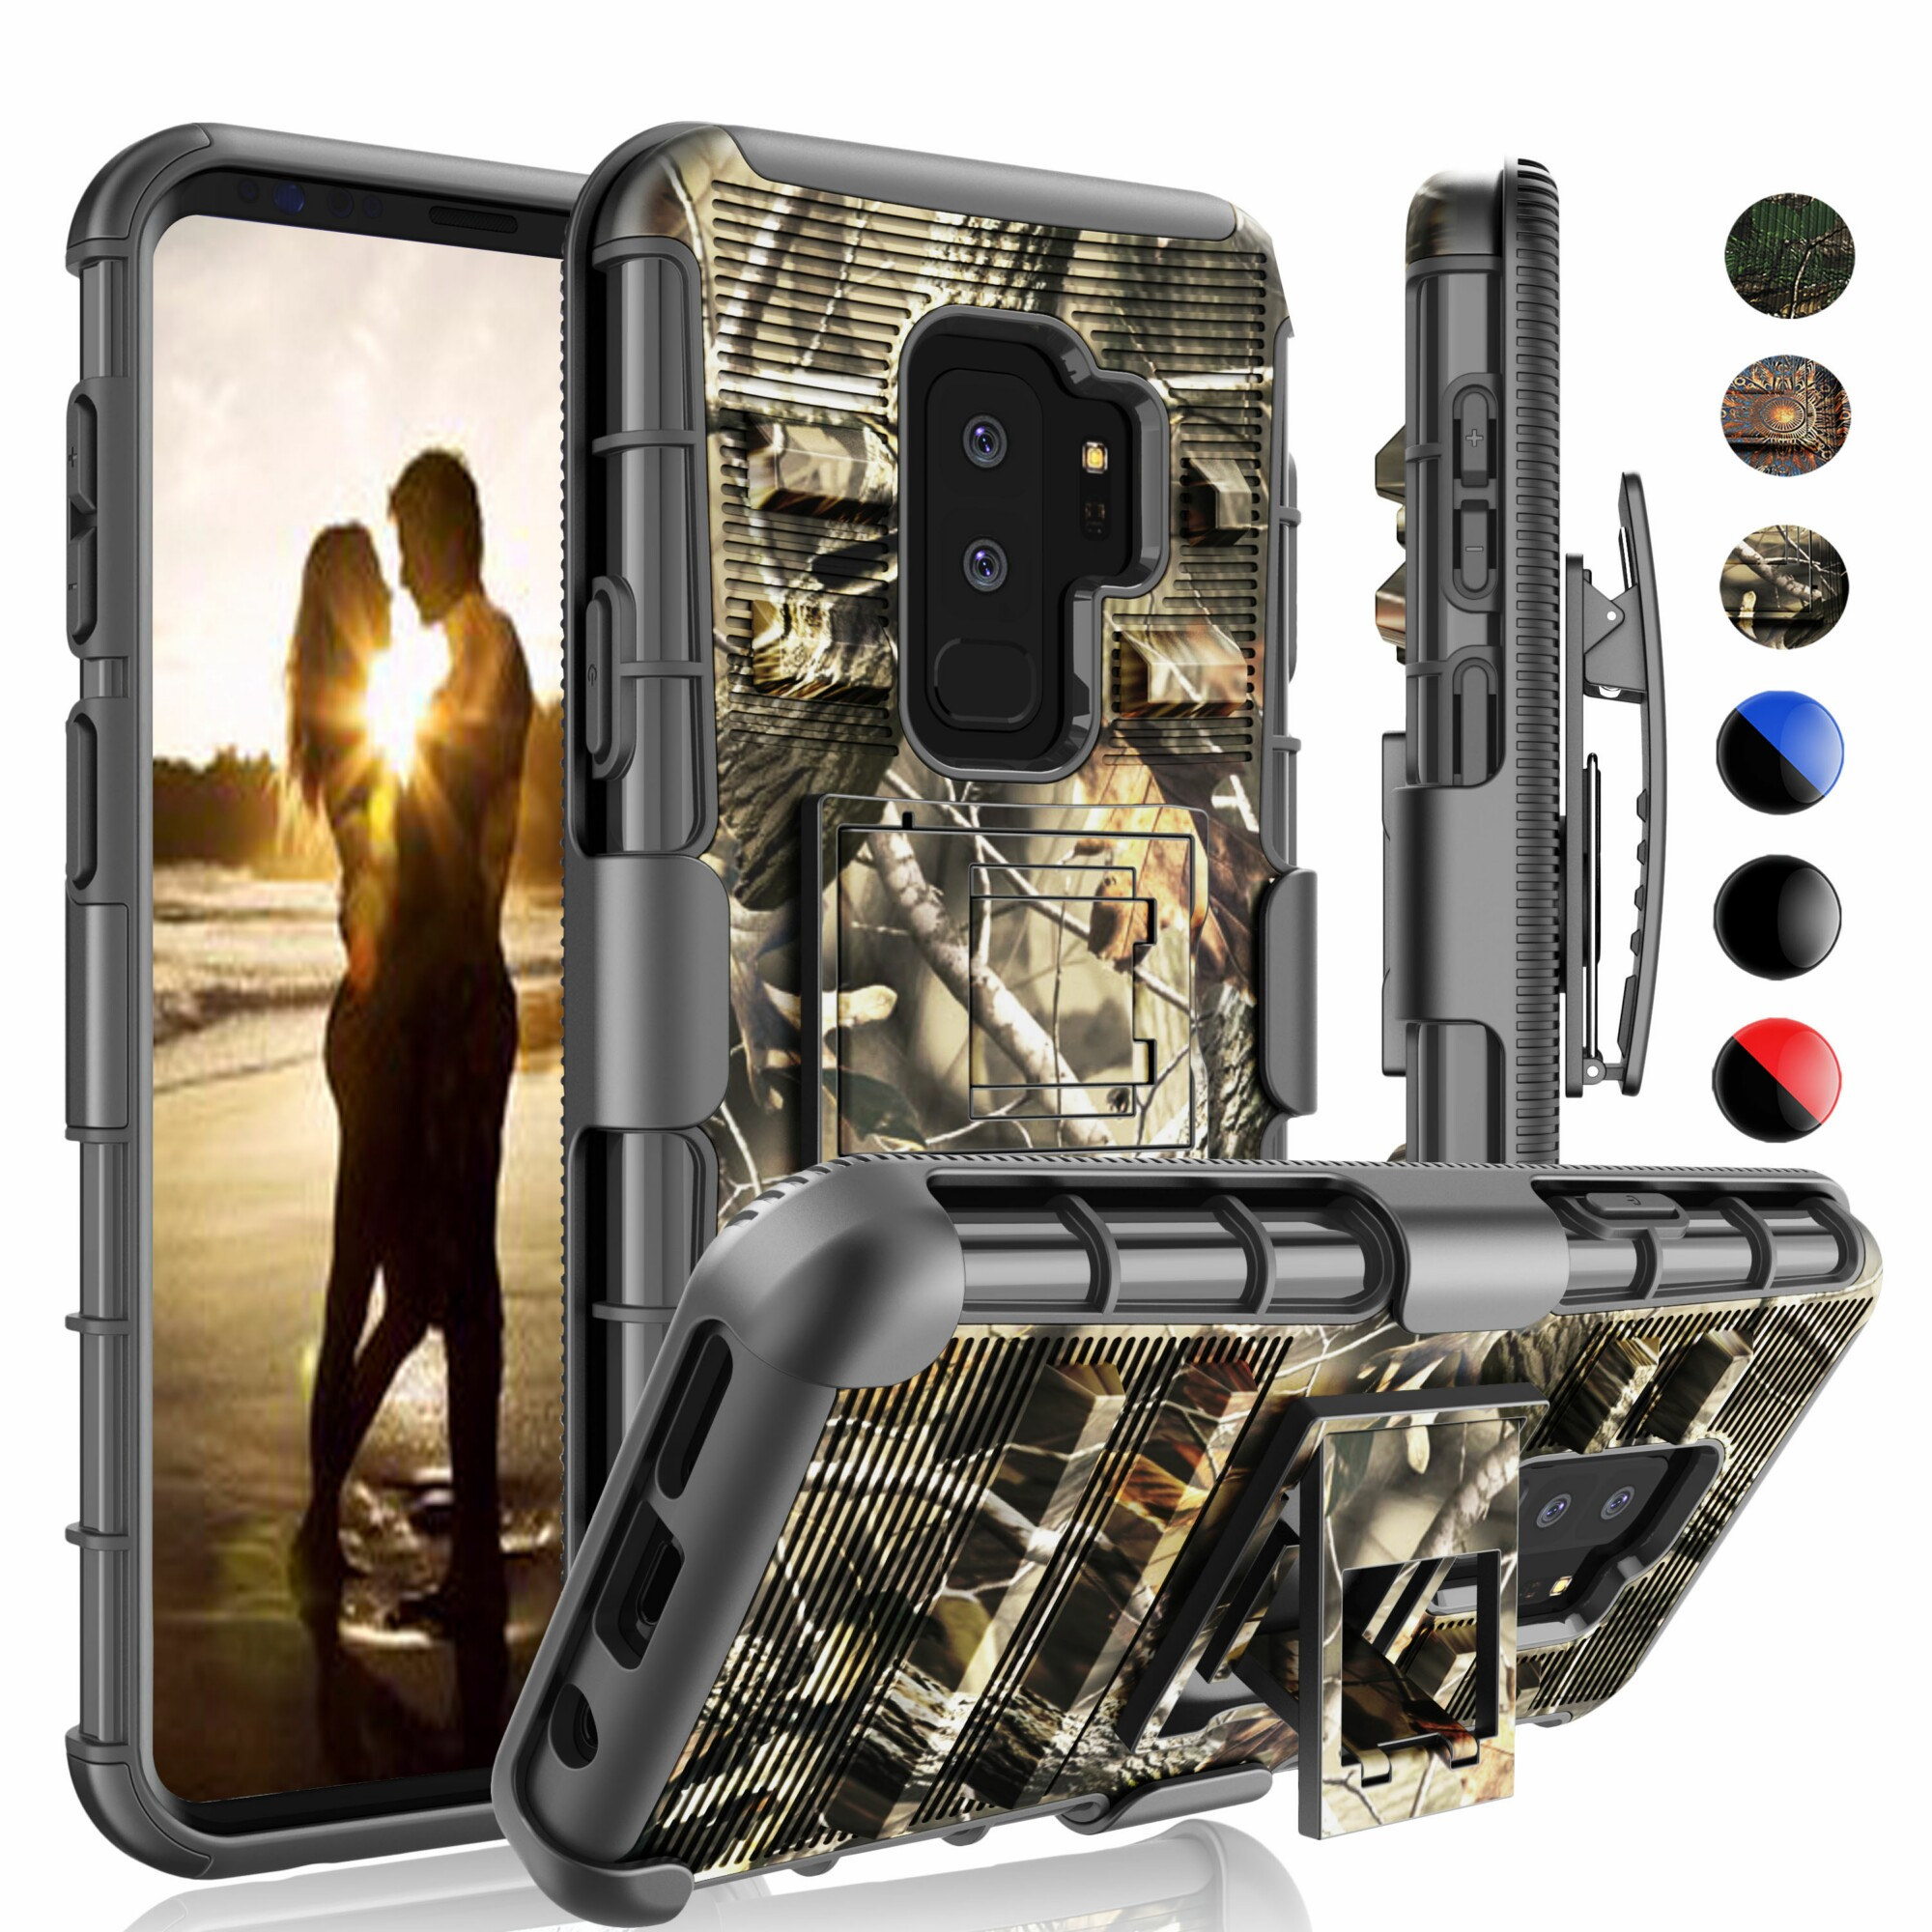 Galaxy S9 Plus Case, Galaxy S9 Plus Holster Belt Clip, Njjex Shock Absorbing Holster Locking Belt Clip With Kickstand Carrying Armor Camouflage Cases Cover For Samsung Galaxy S9 Plus -Relic